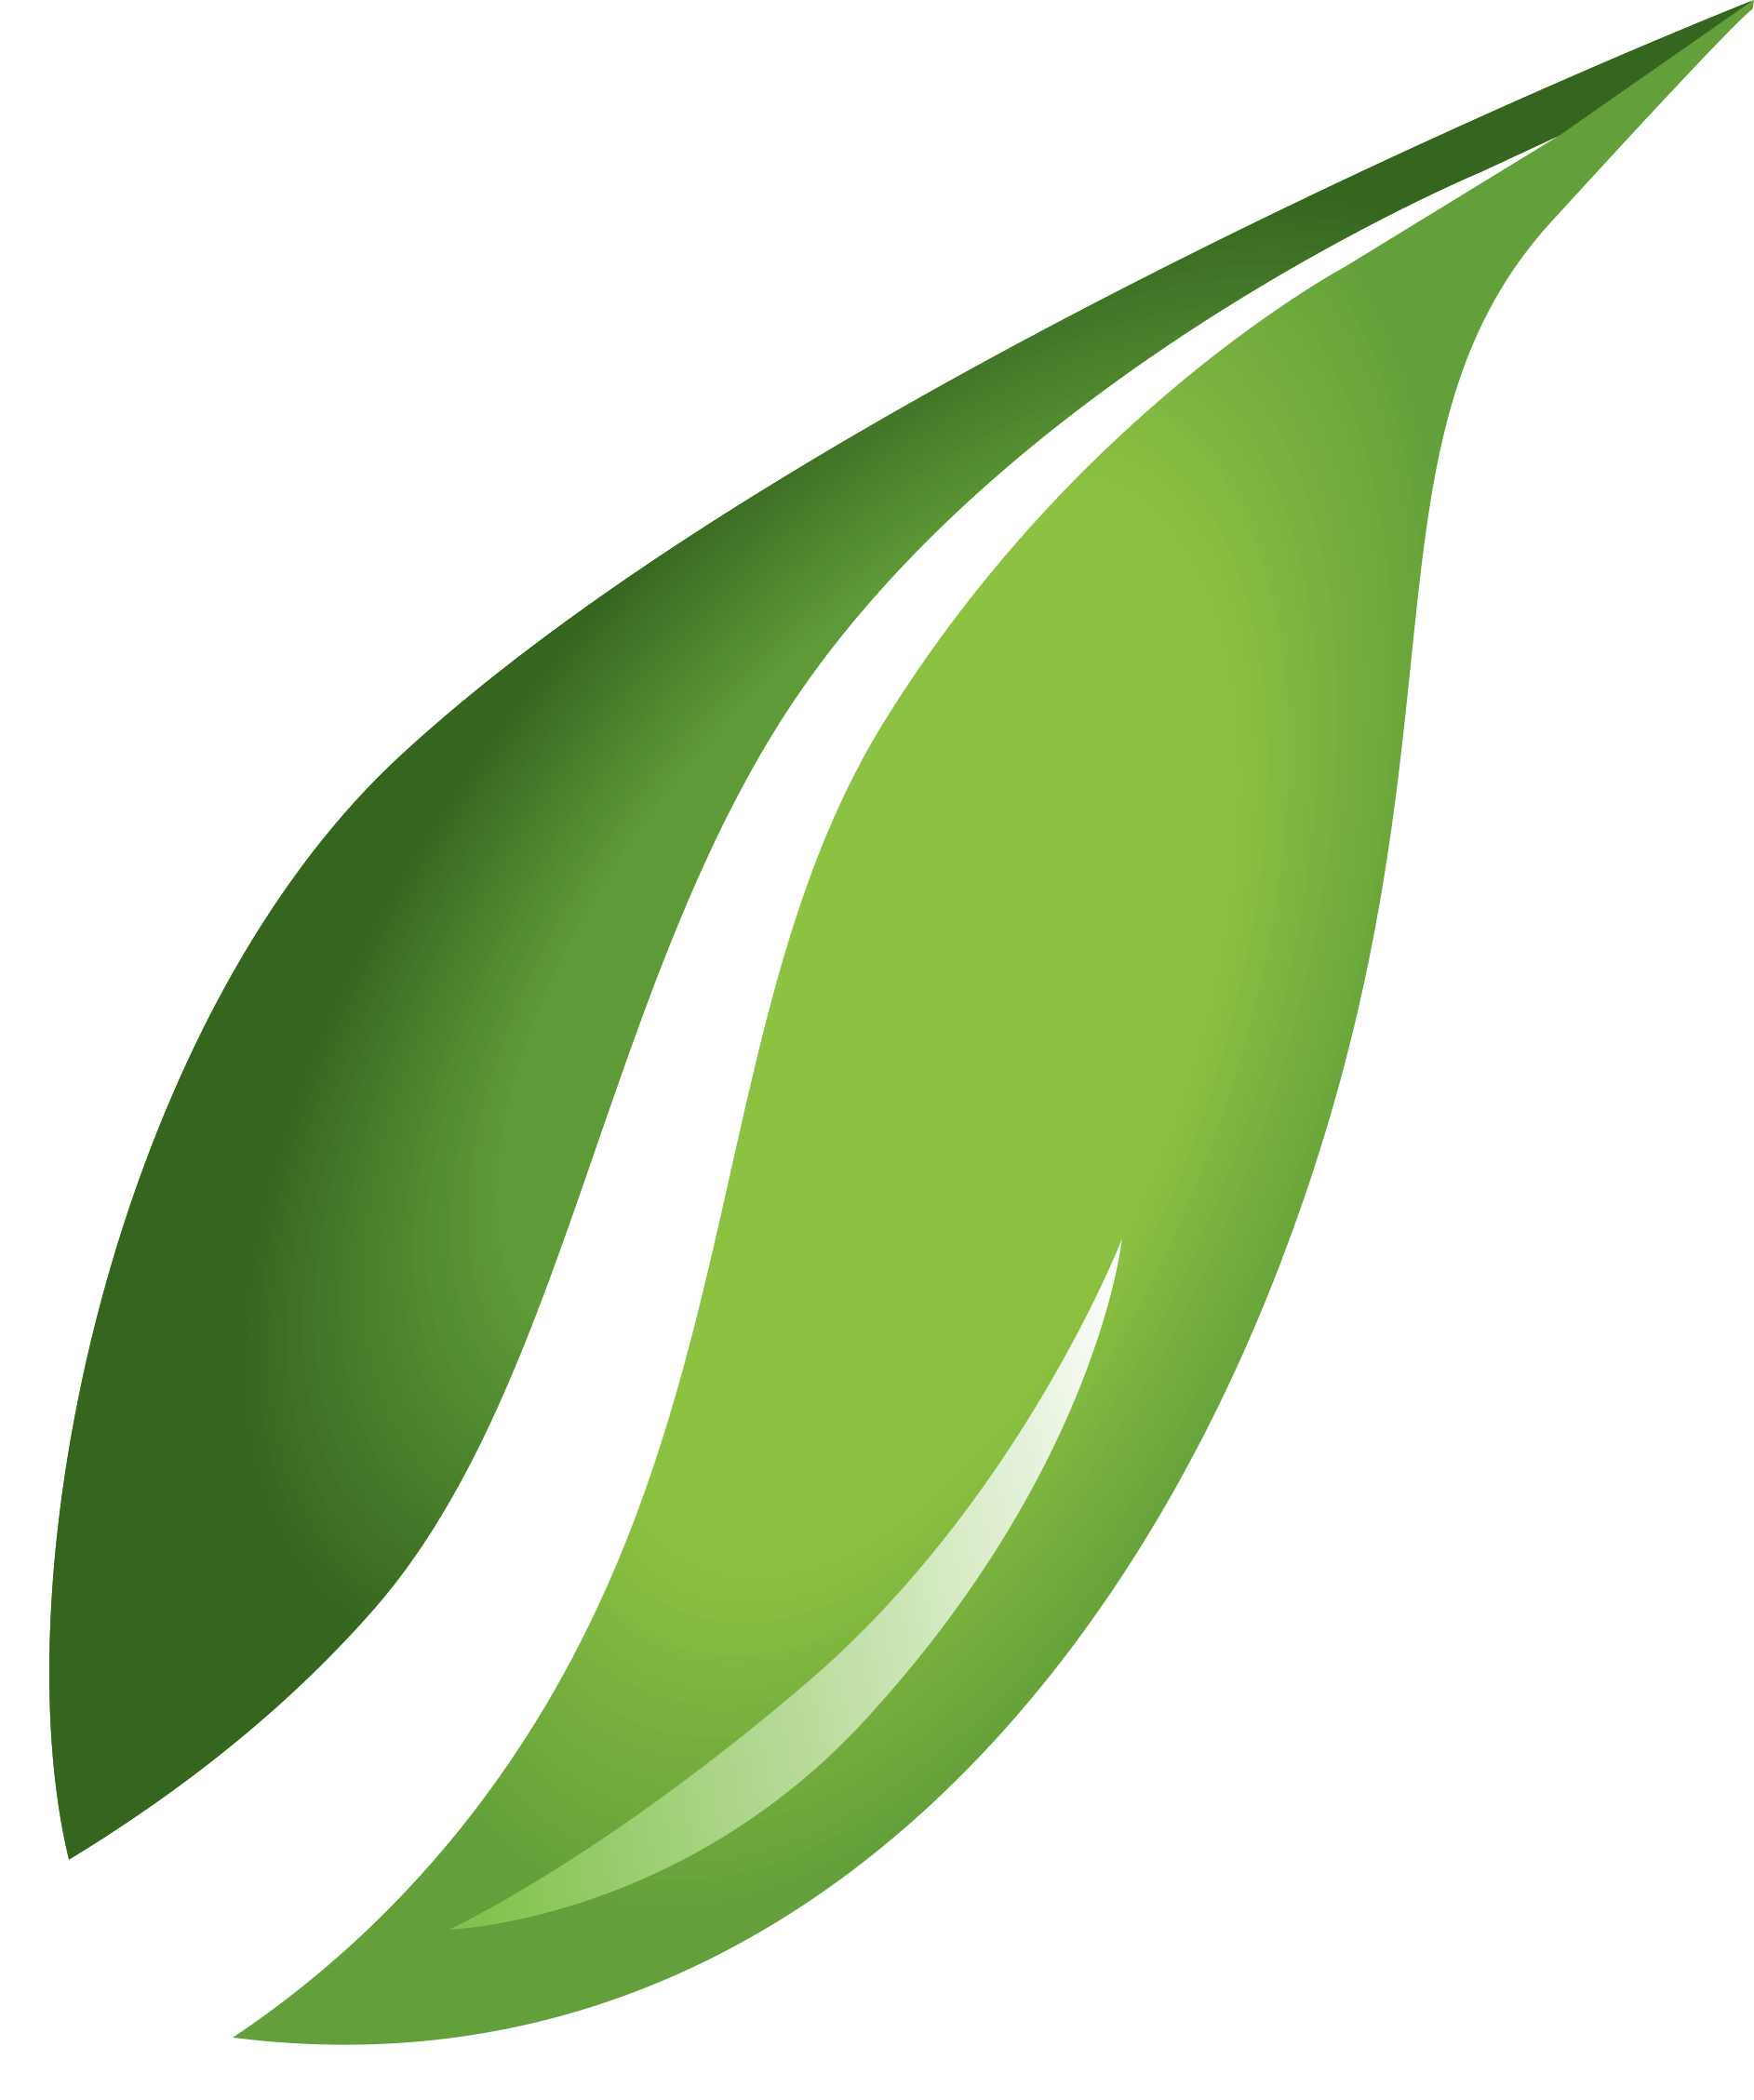 leaf garden leave icon png 10678 free icons and png backgrounds